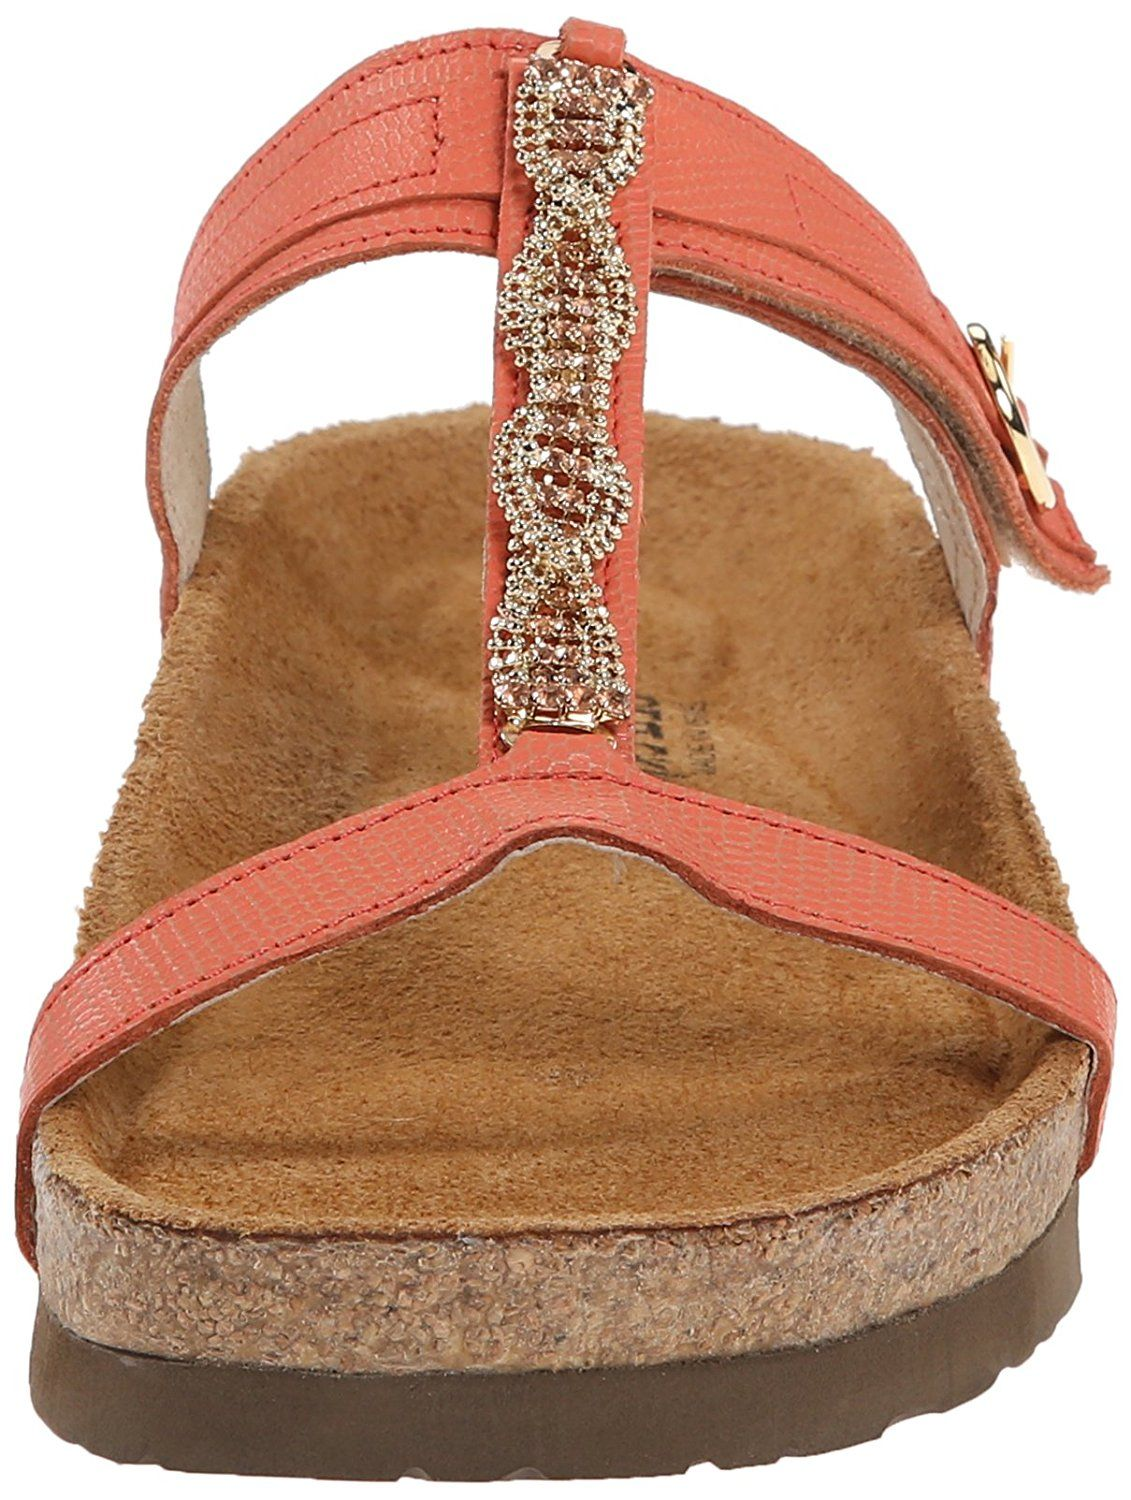 f5c58ed58777 Naot Footwear Women s Malibu Quartz Leather Sandal     Read more at the  image link. (This is an affiliate link)  shoestrend